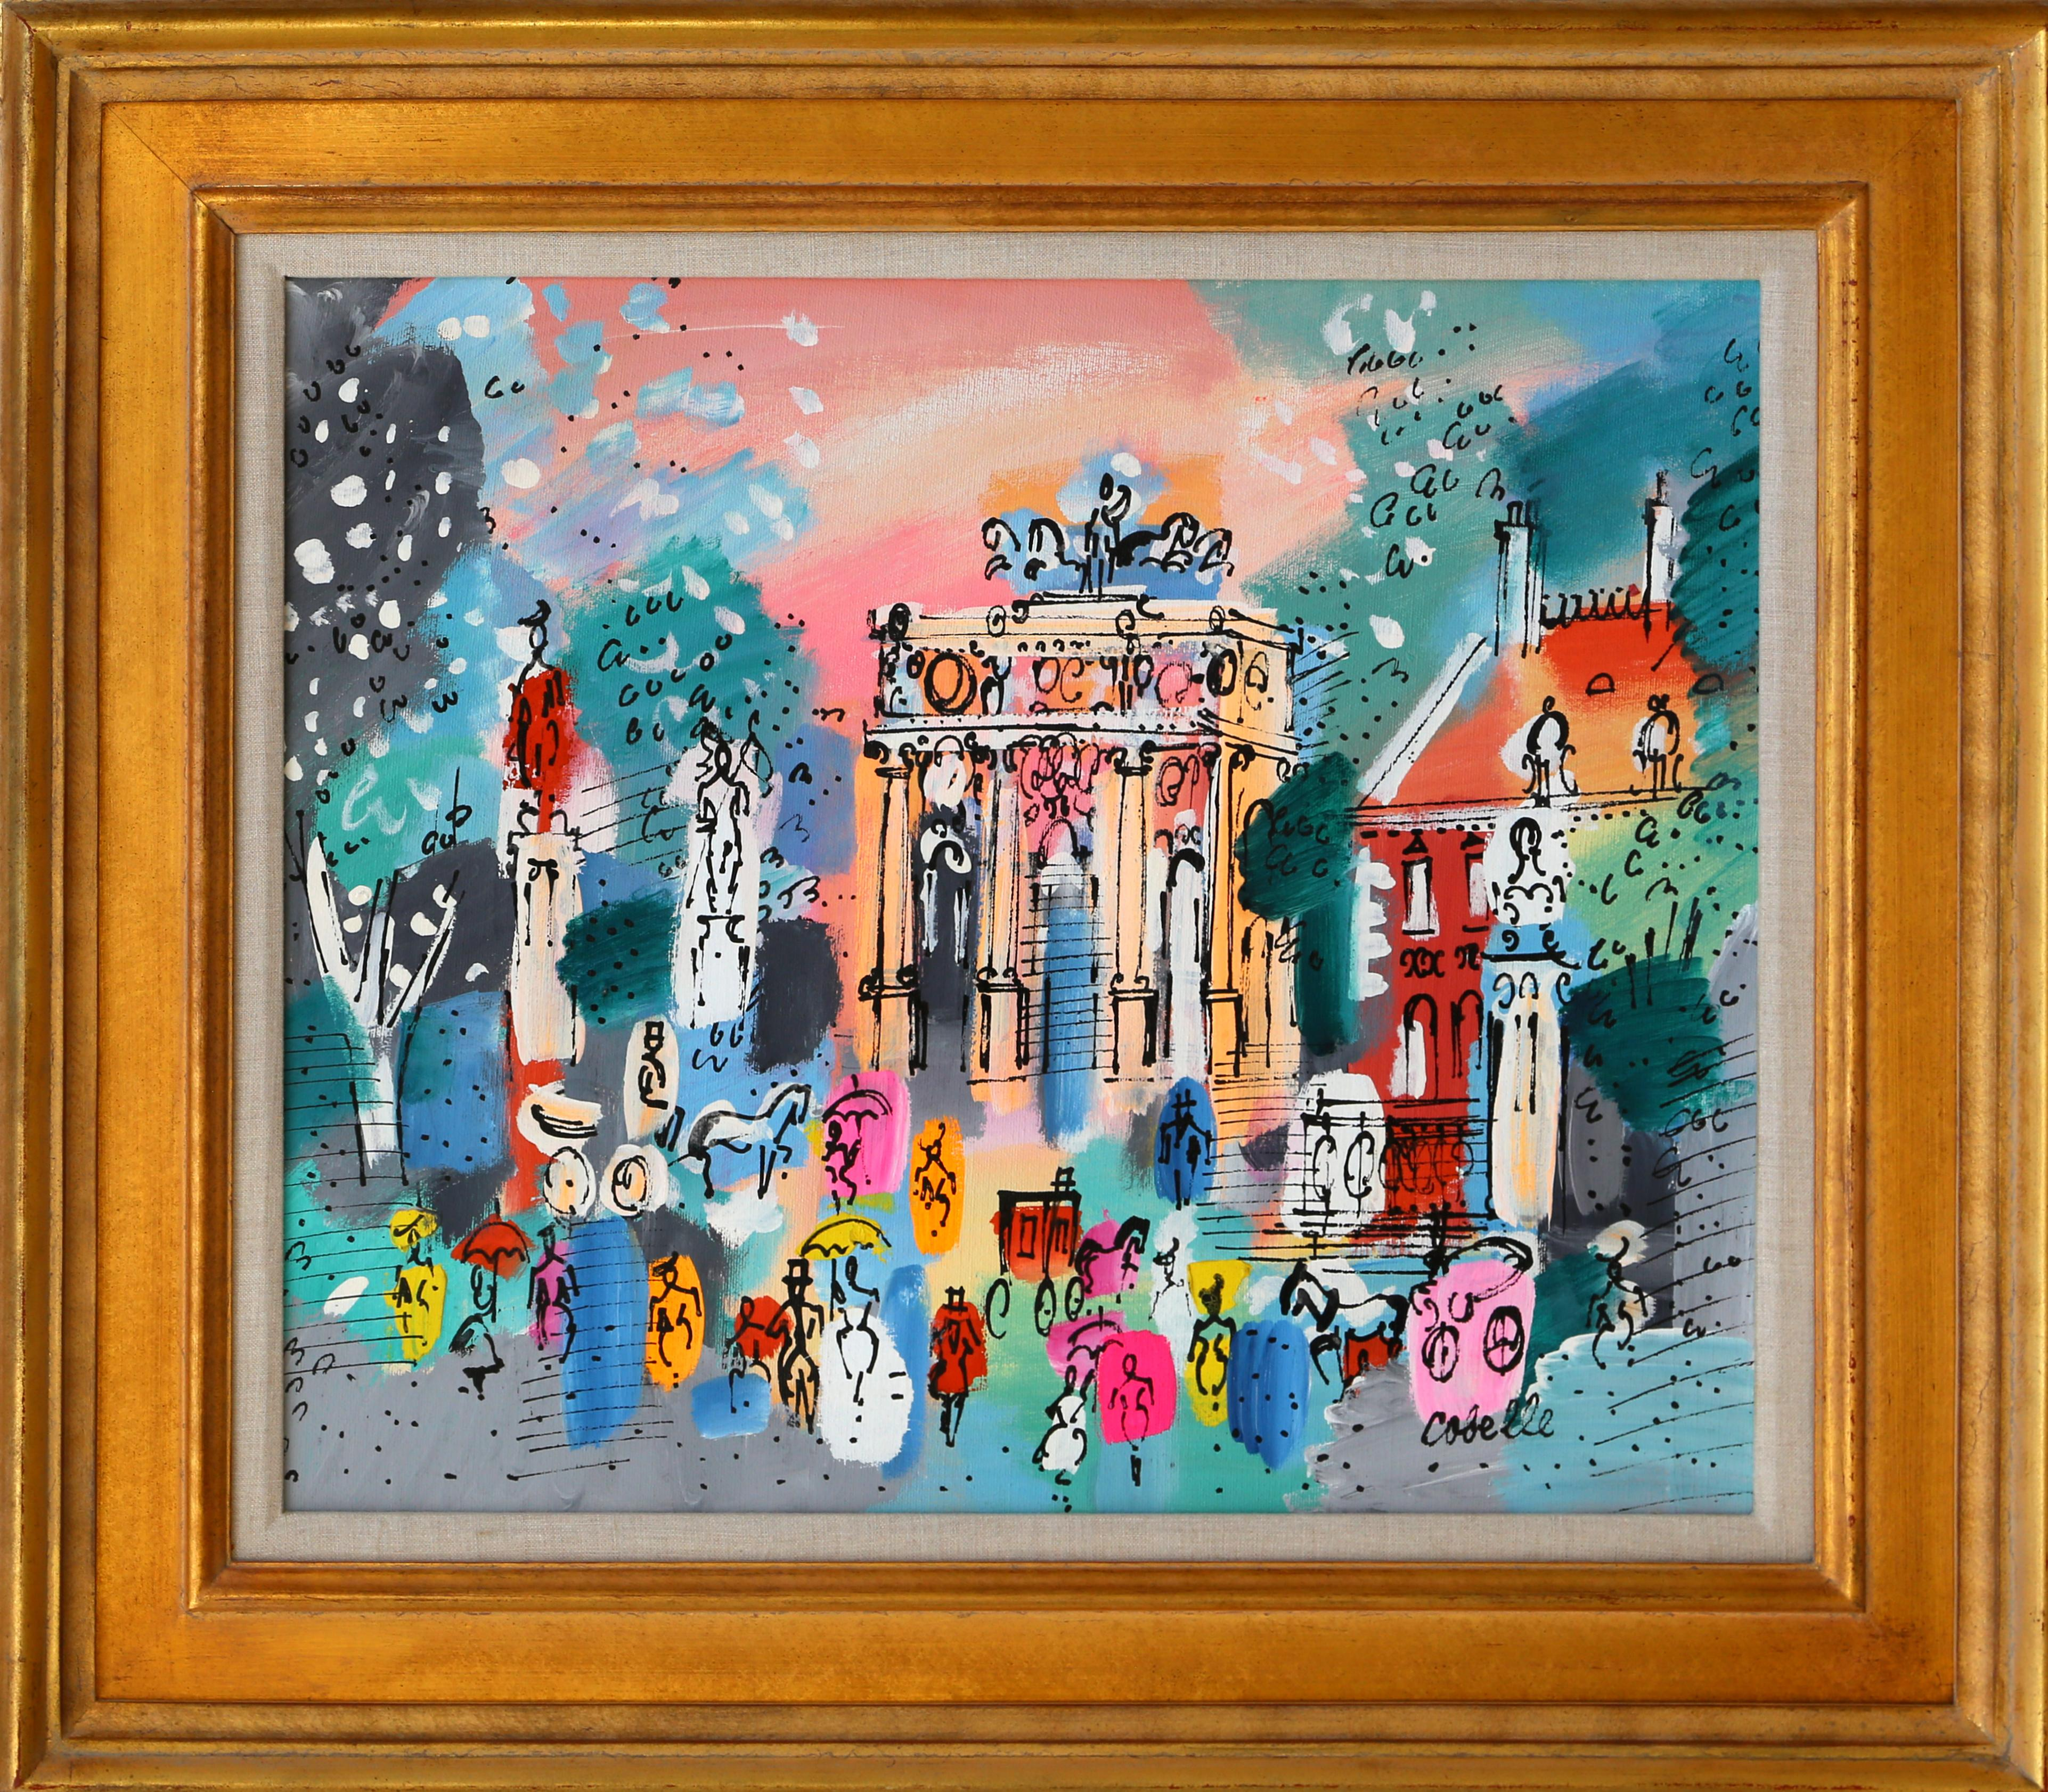 Monument, Paris Framed Painting by Charles Cobelle